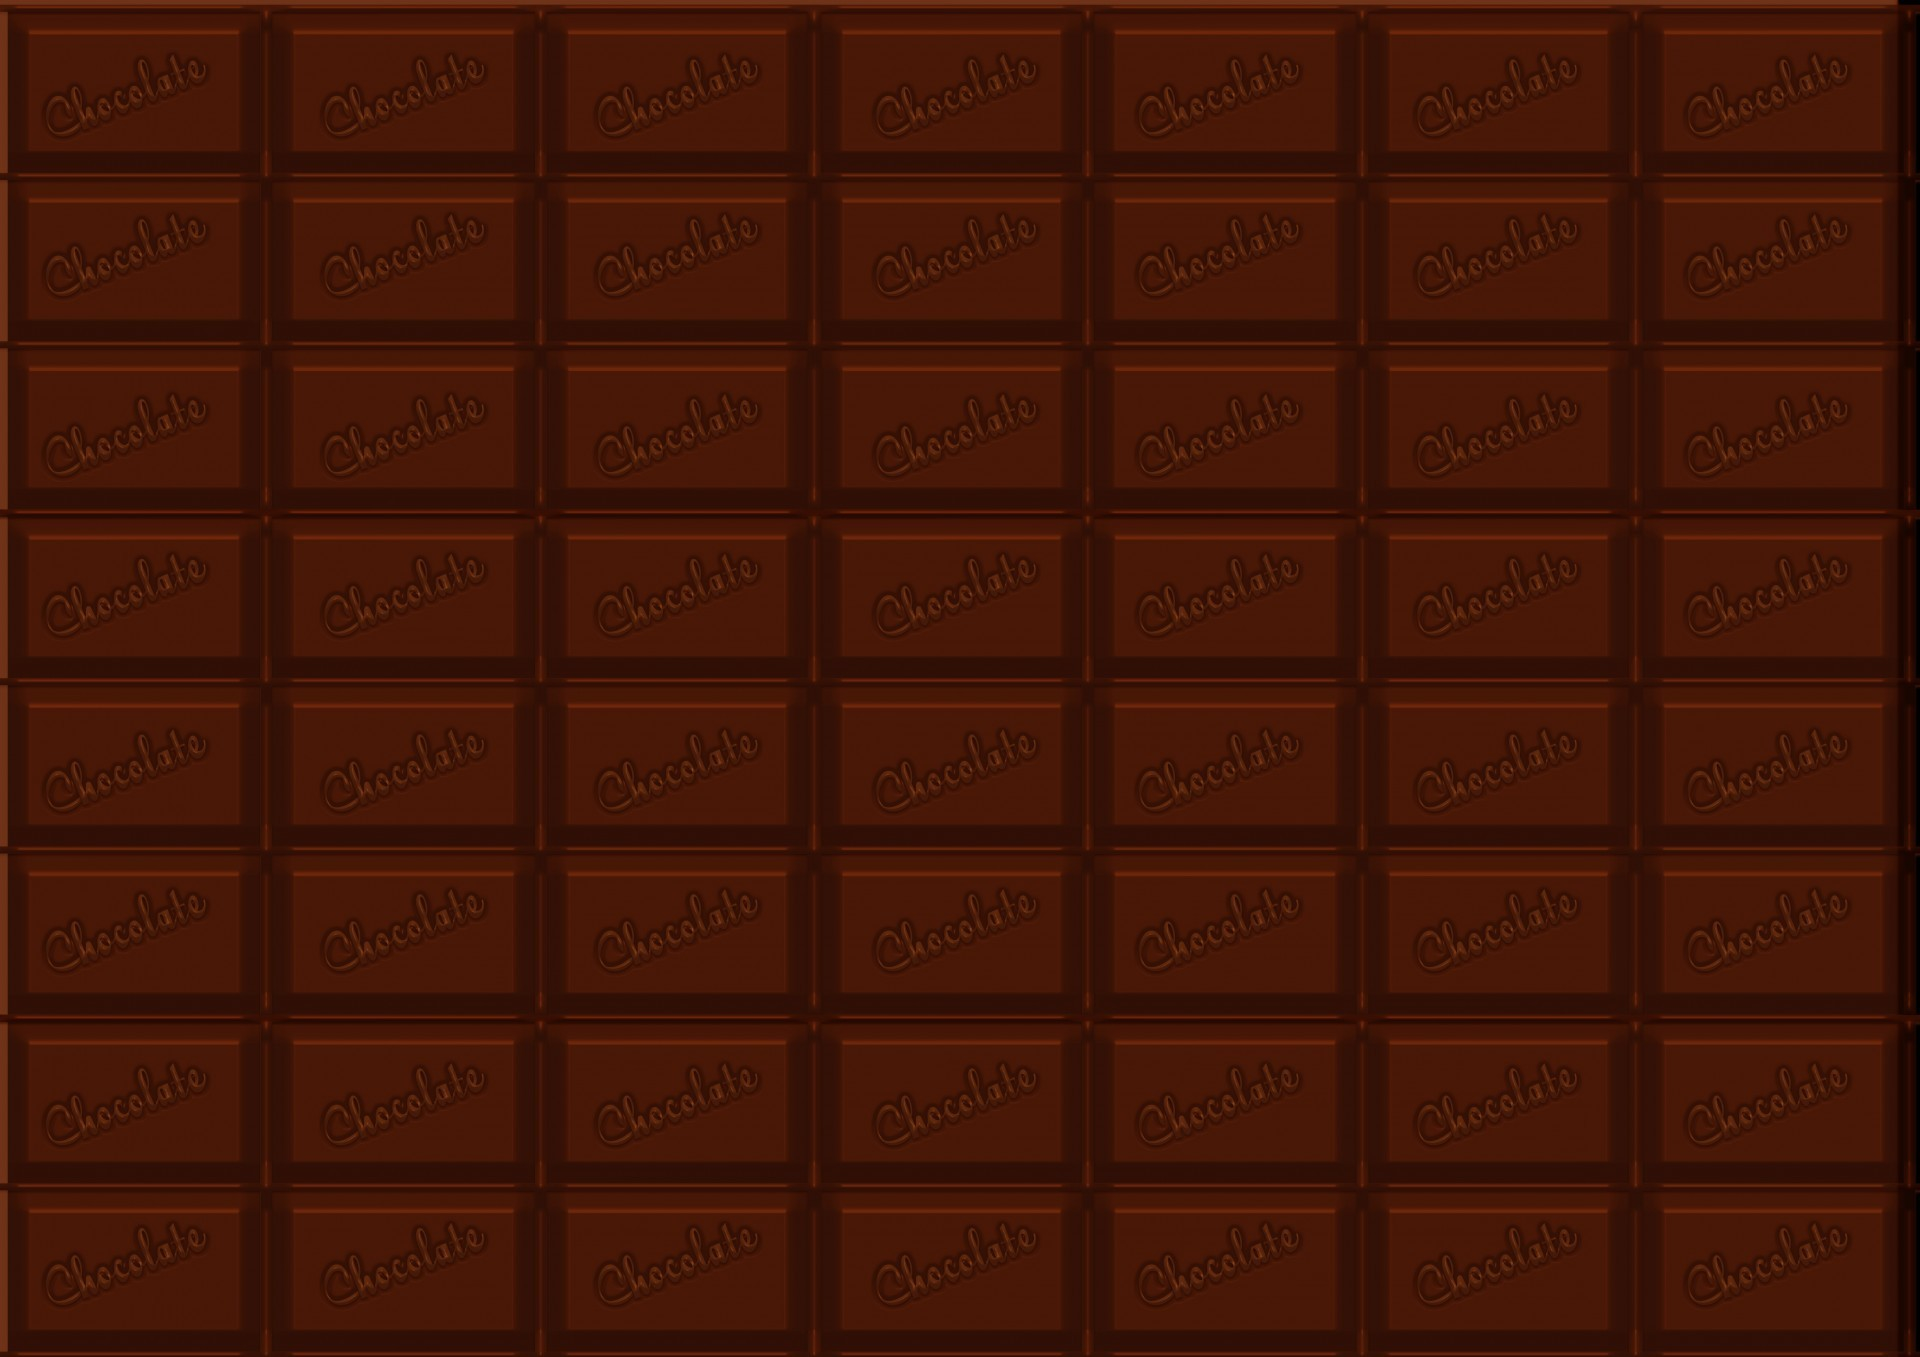 Iphone X Full Wallpaper Size Chocolate Background 183 ① Download Free Cool High Resolution